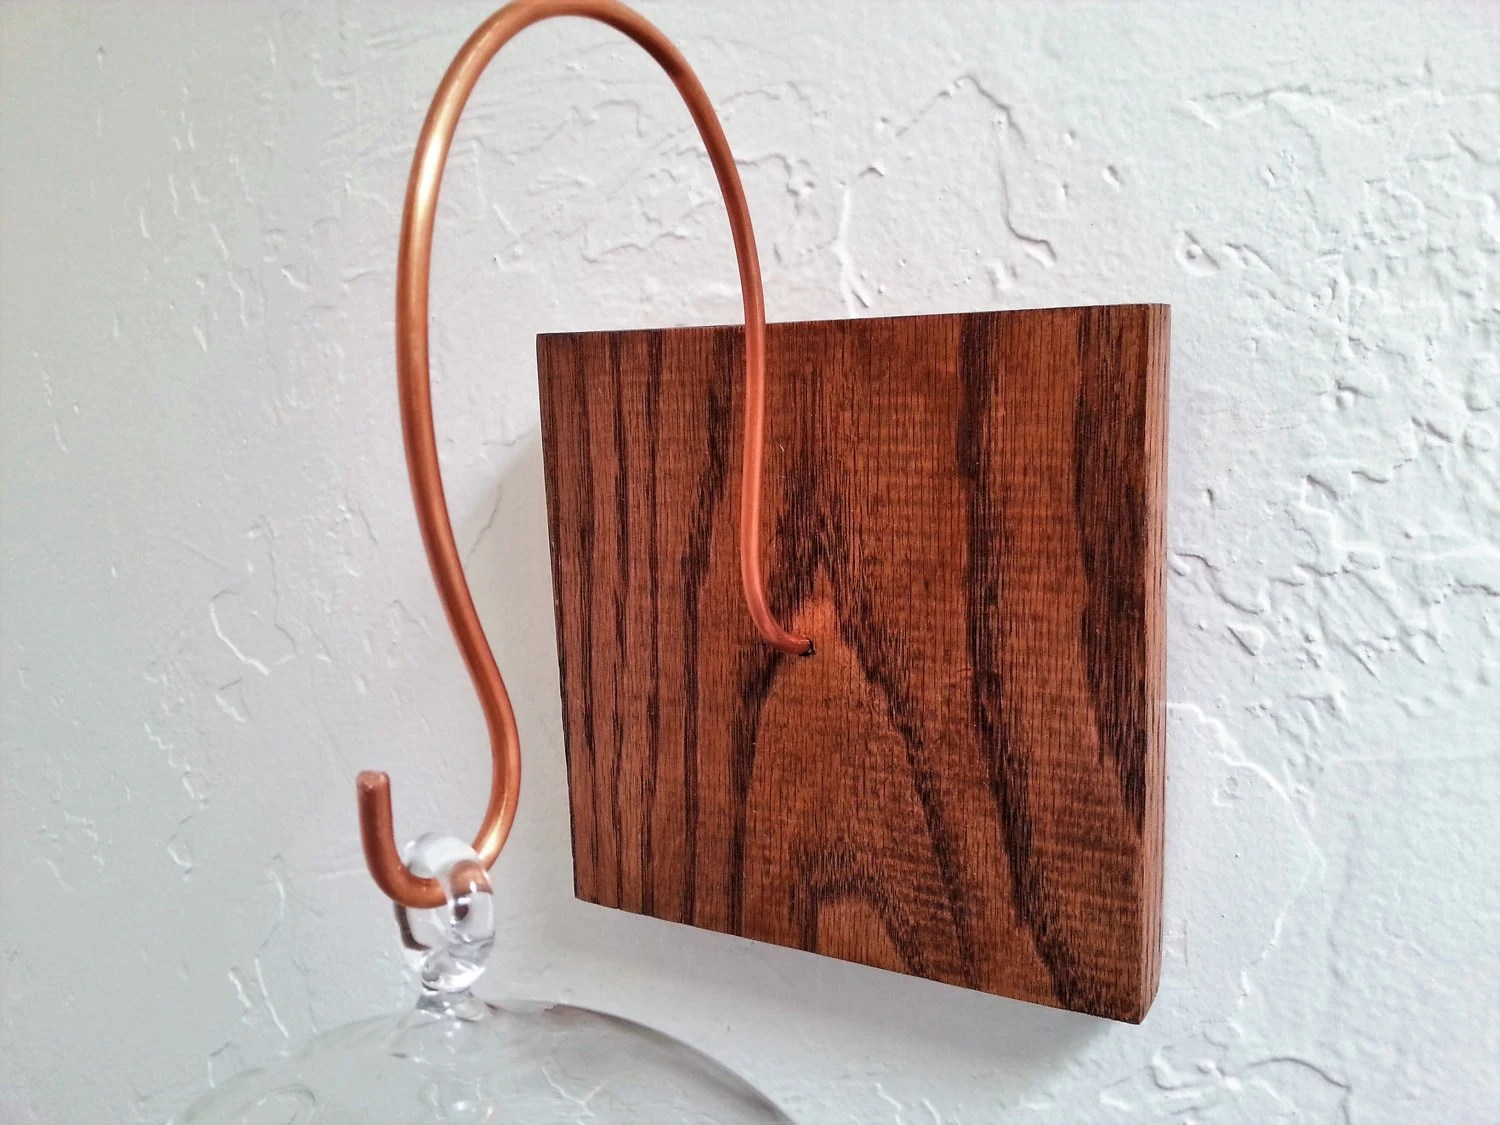 Wall Mount For Hanging Terrarium Handmade Wood And Copper